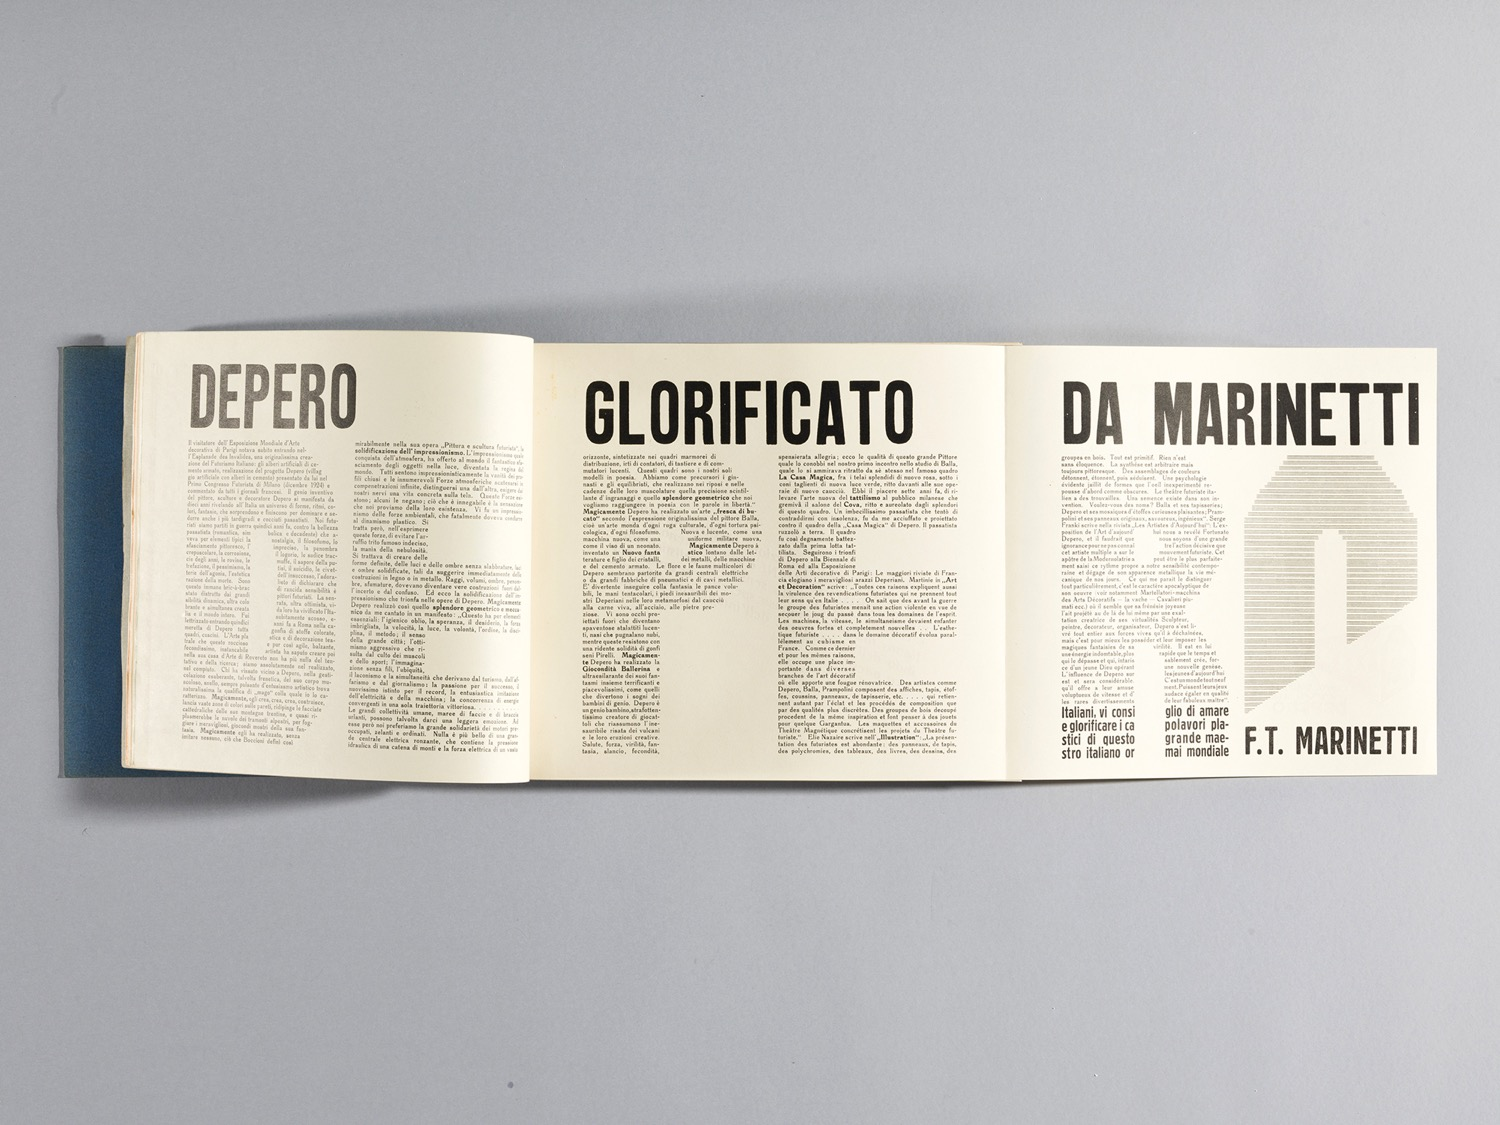 Depero Bolted Book 021